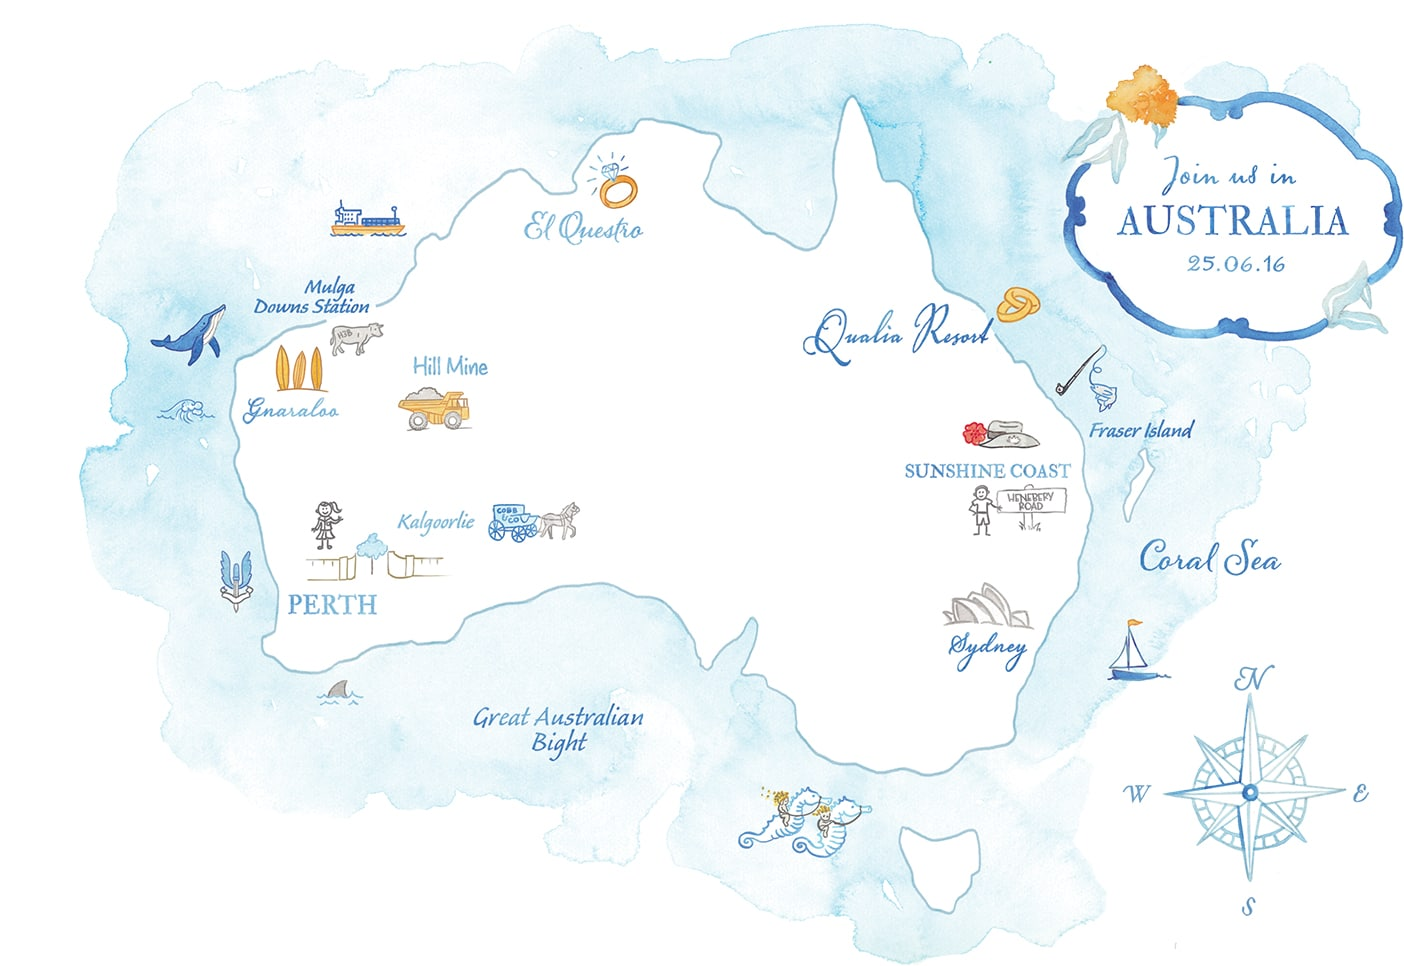 Watercolor wedding map of Australia